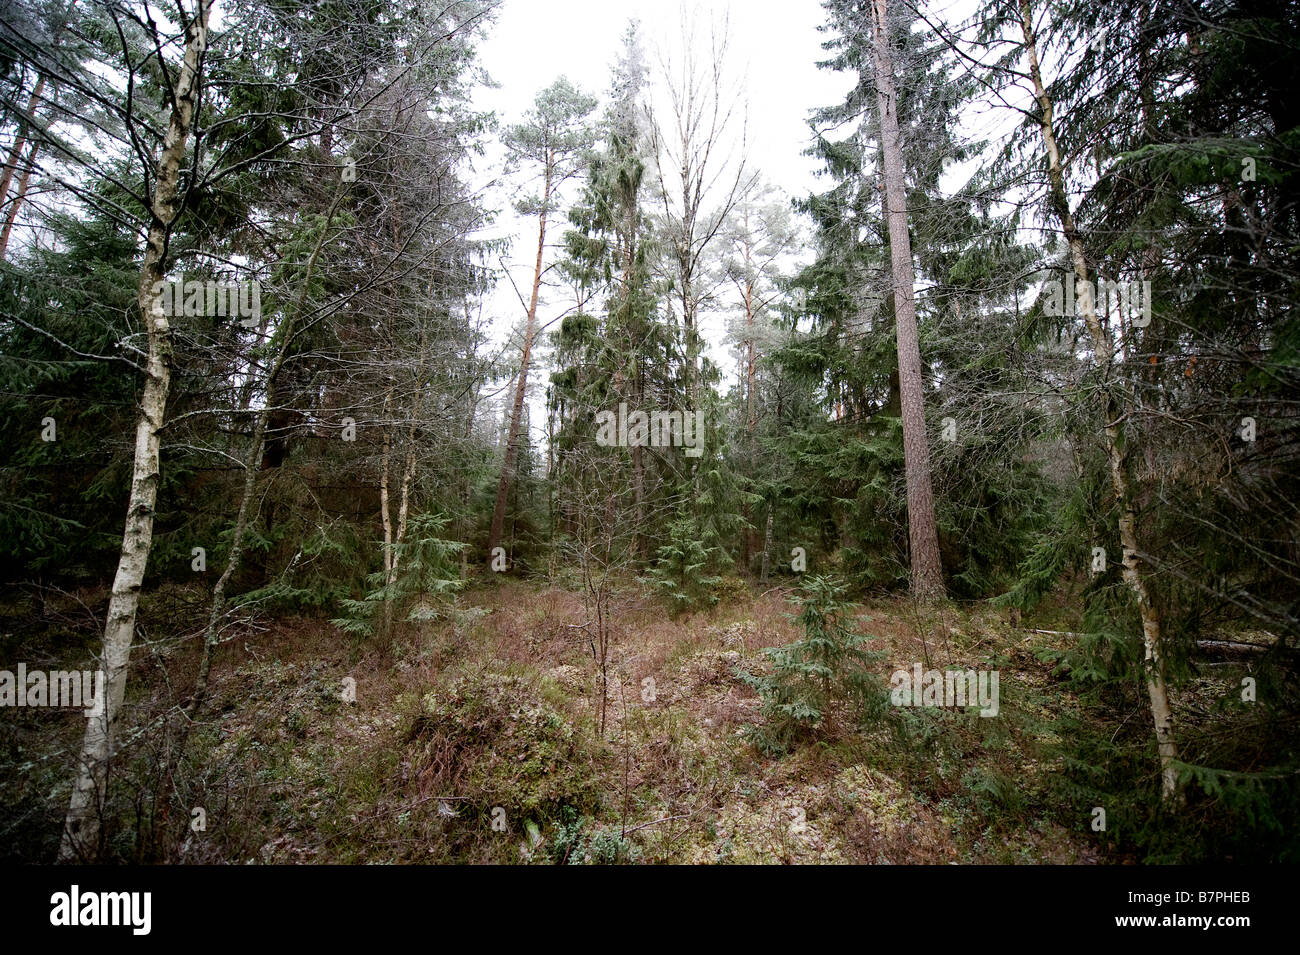 Typical swedish forest - Stock Image